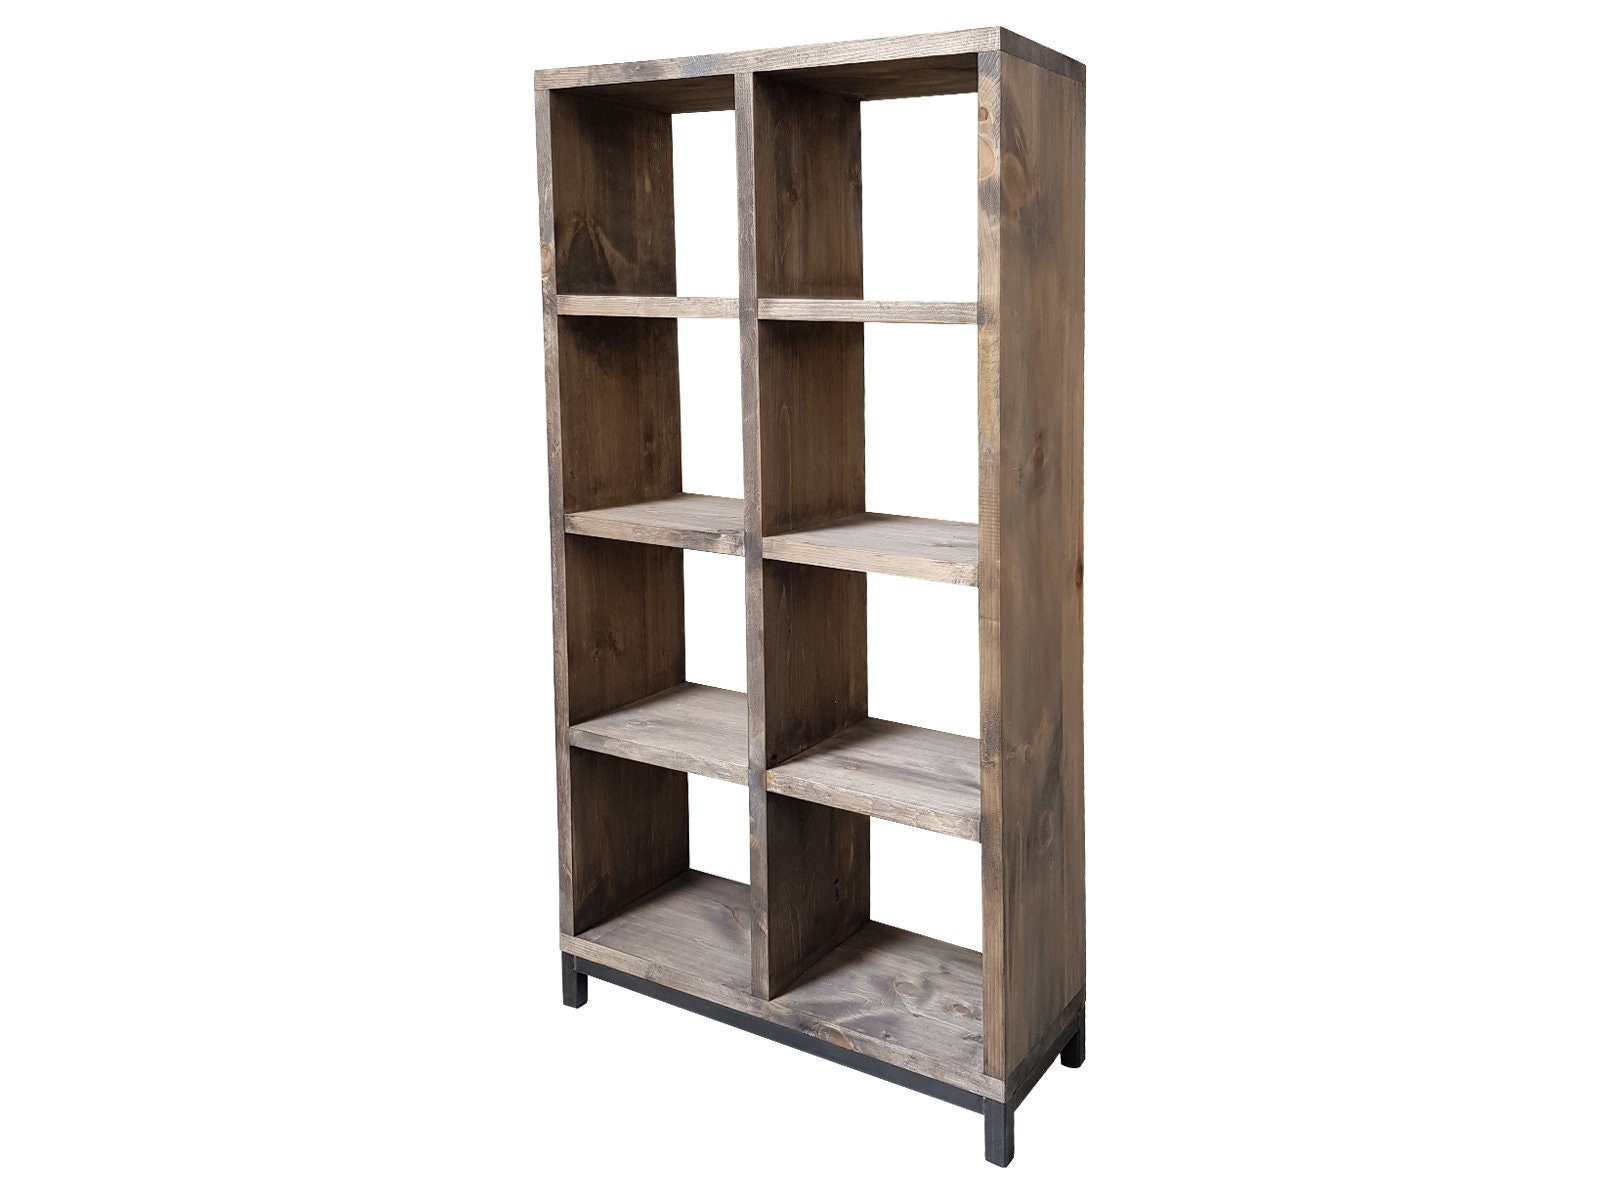 Industrial Bookcase Rustic Wall Unit Wooden Bookcase Shelving Storage